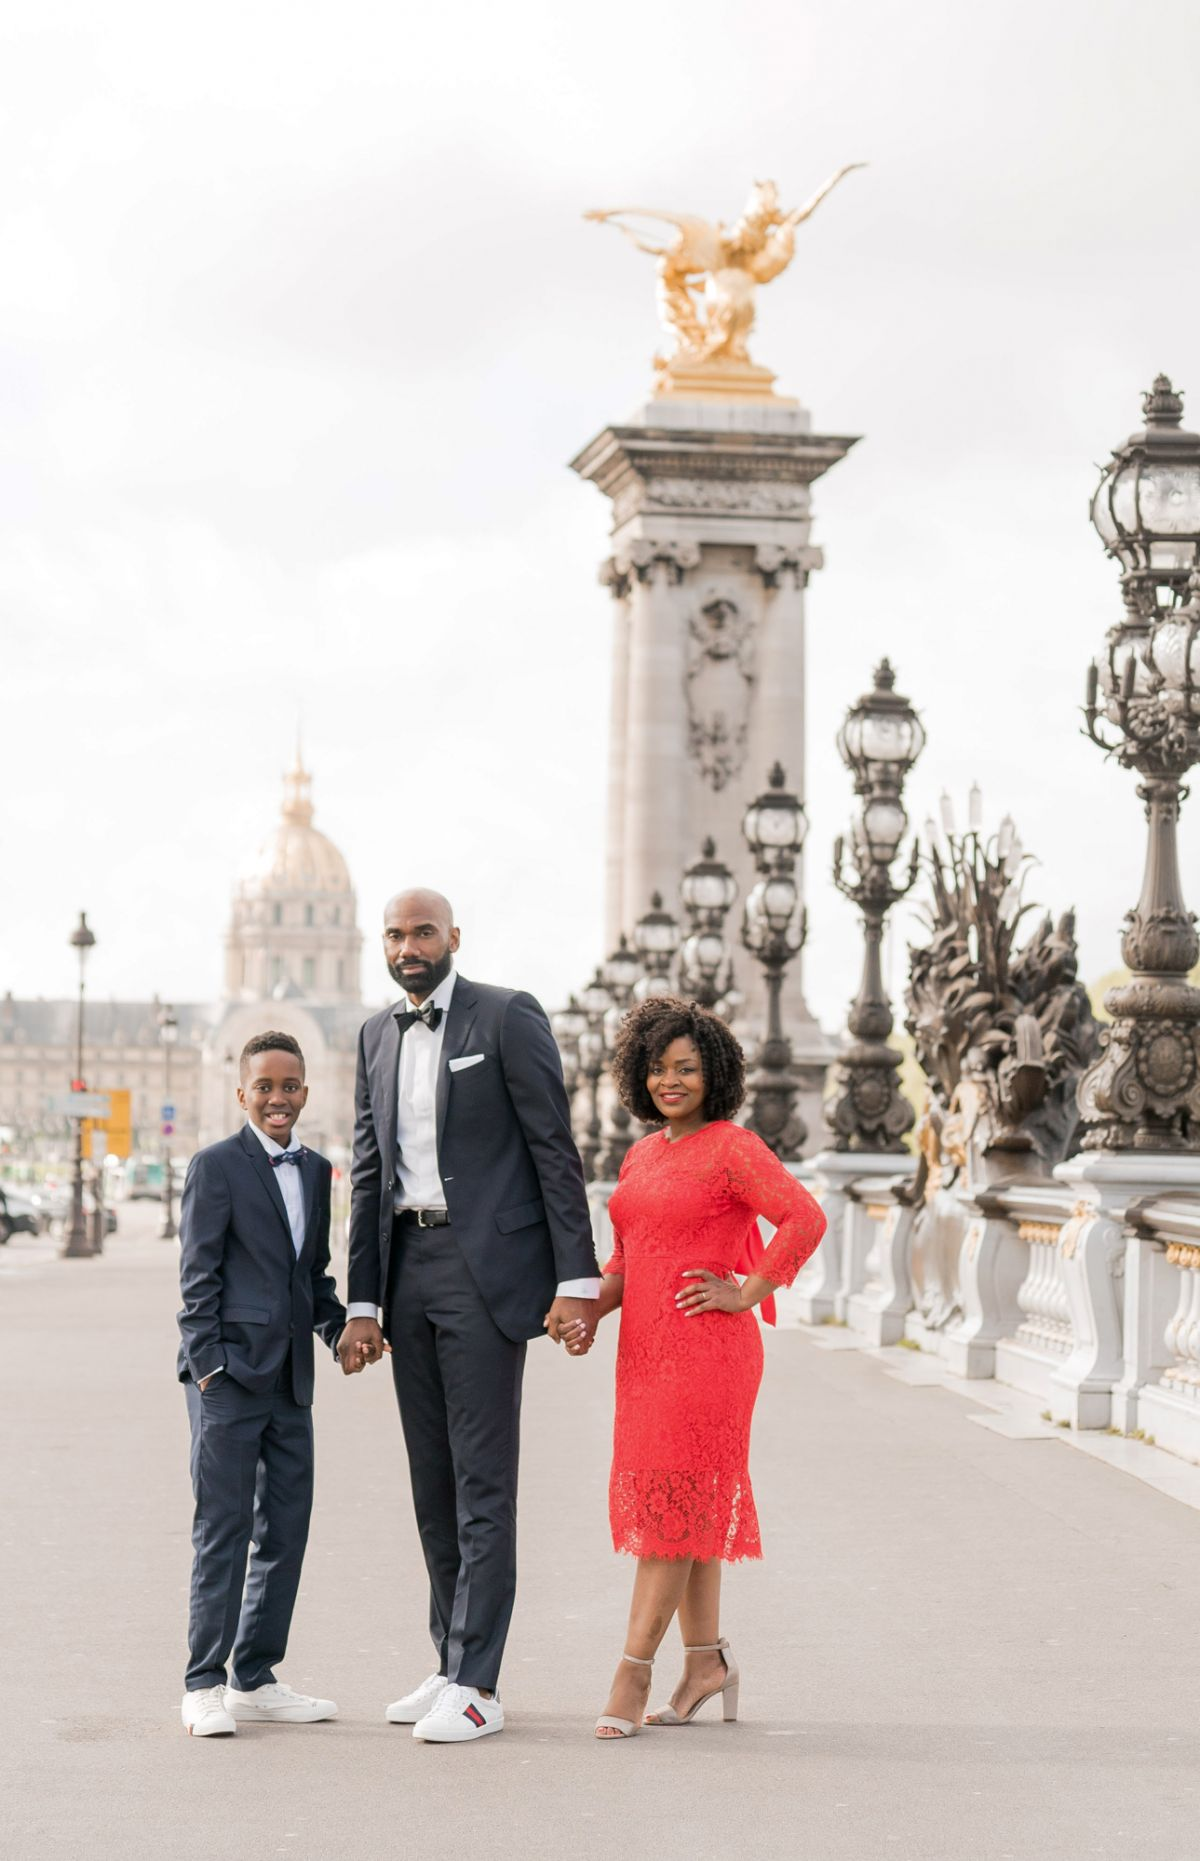 Paris family photos on pont alexandre III bridge